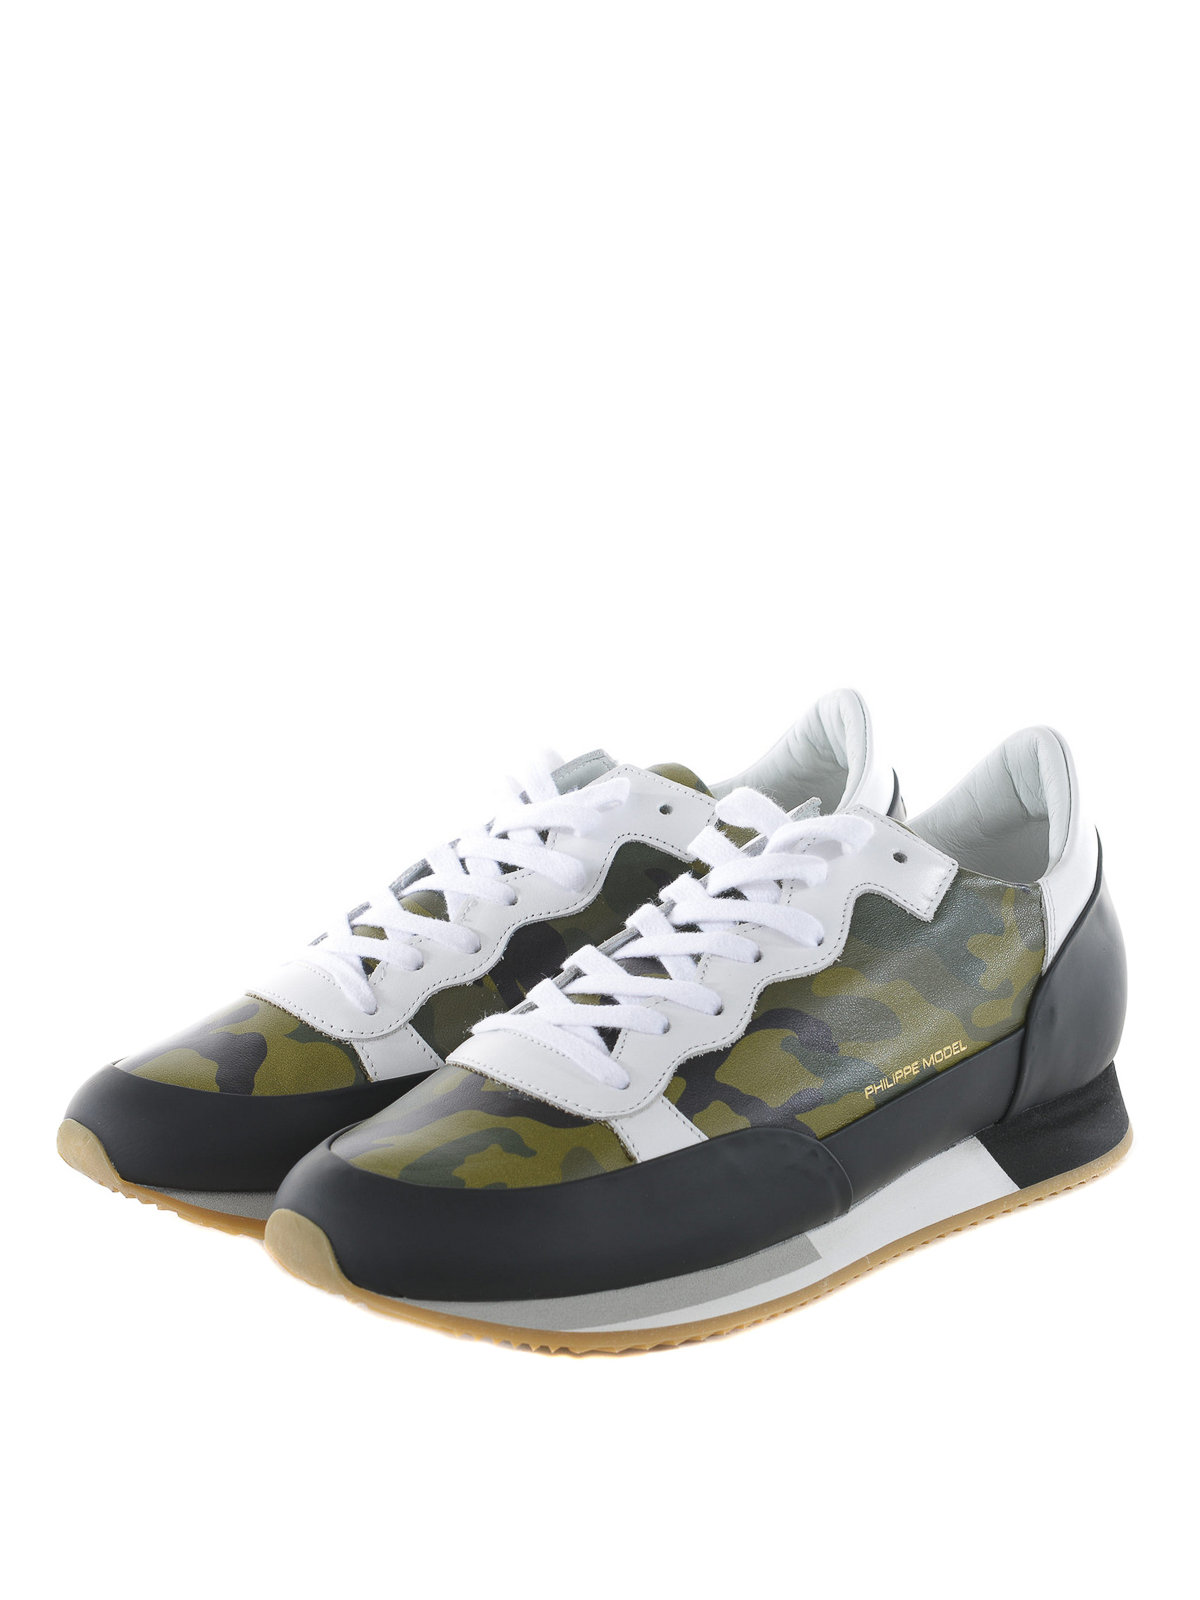 Philippe model 'Bright' sneakers udusbN